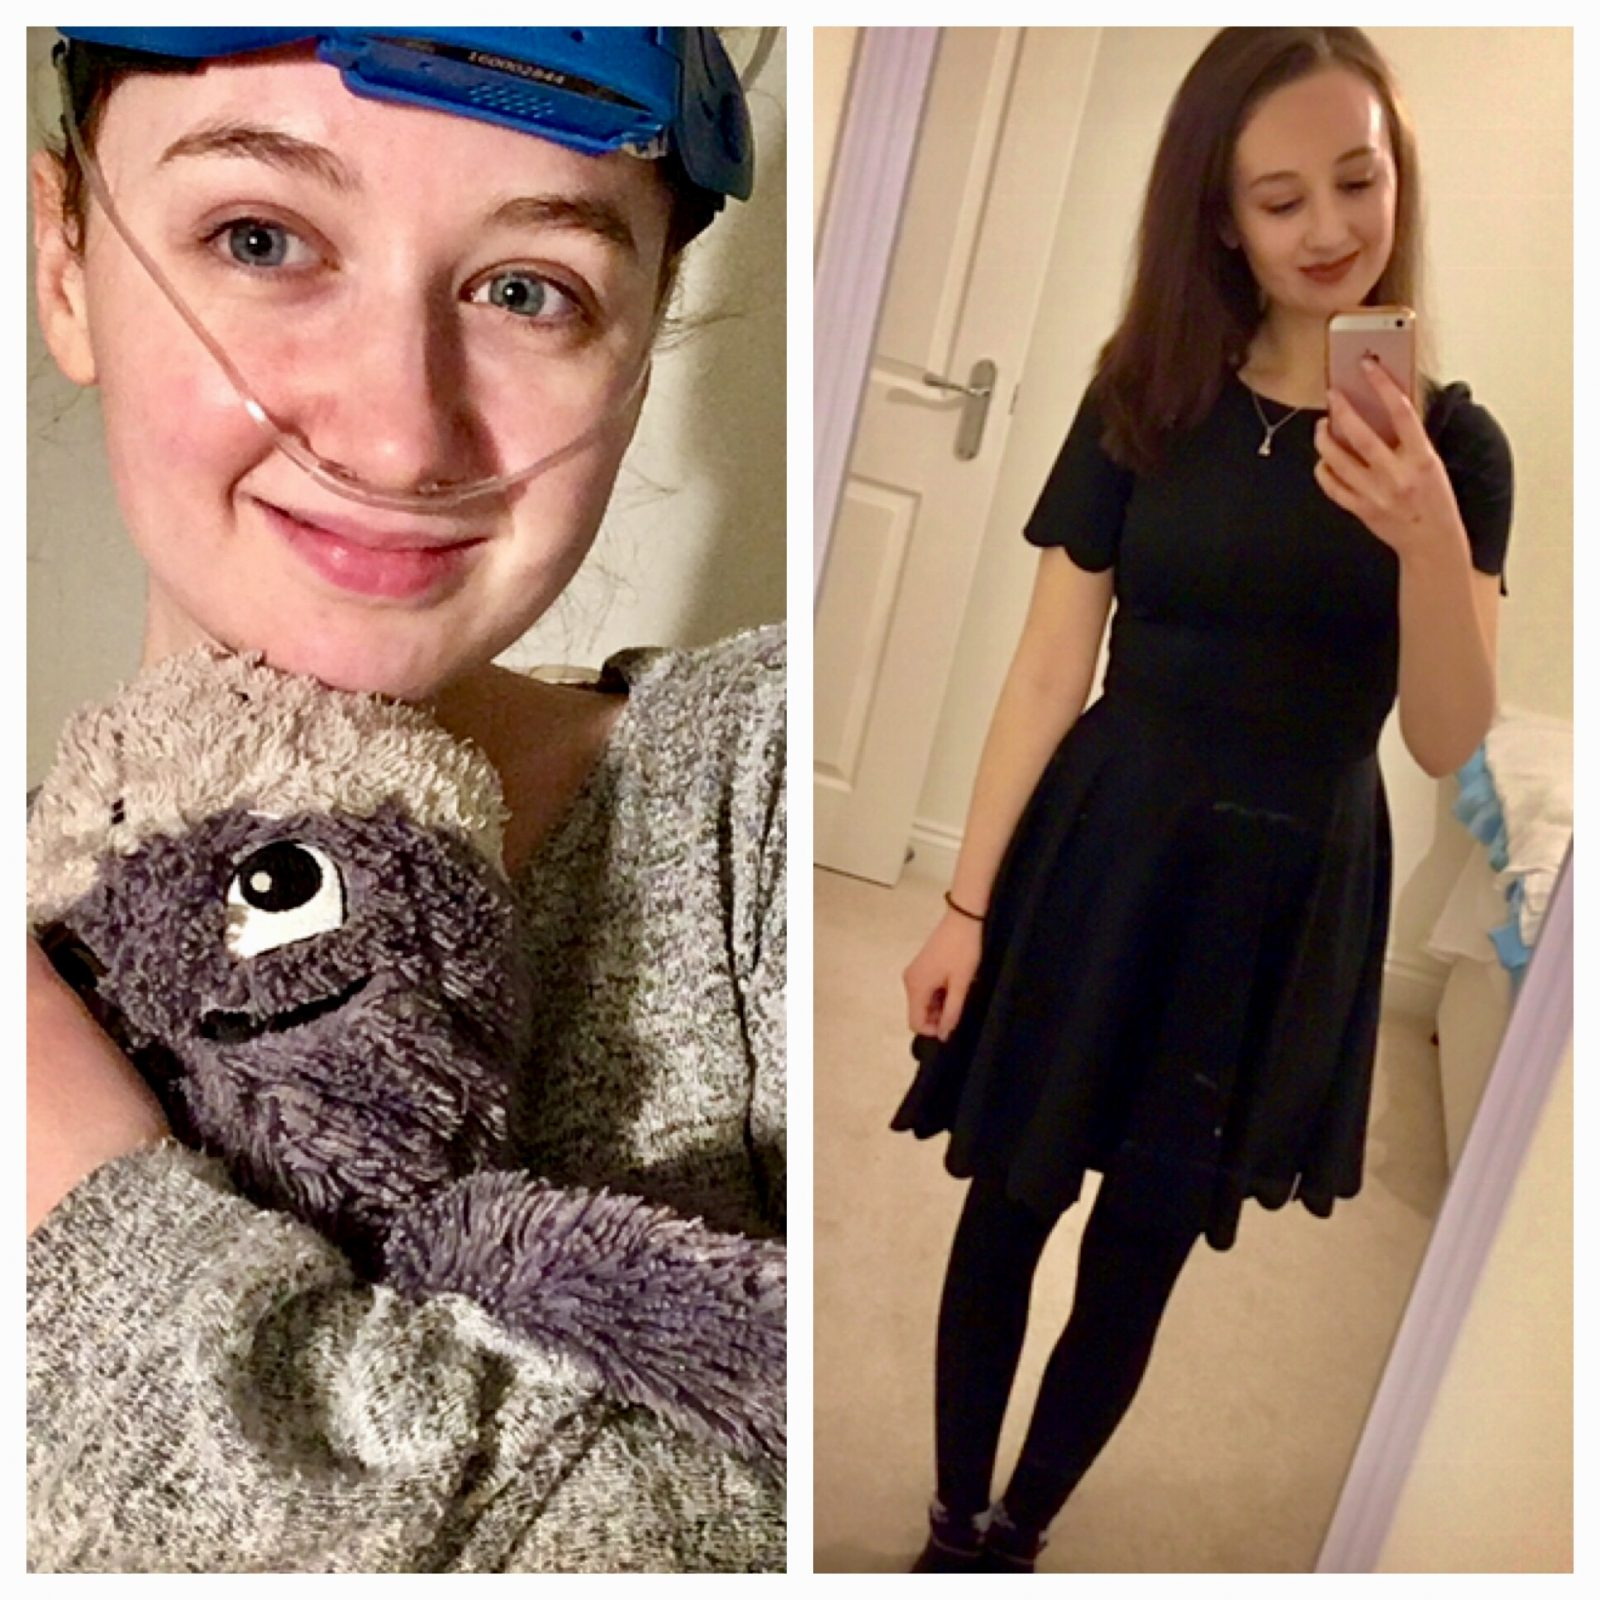 two images of pippa. left image features pippa in pyjamas, holding soft toy, with nose cannula and headgear, right image featuring nice dress and hair and make-up done for going out